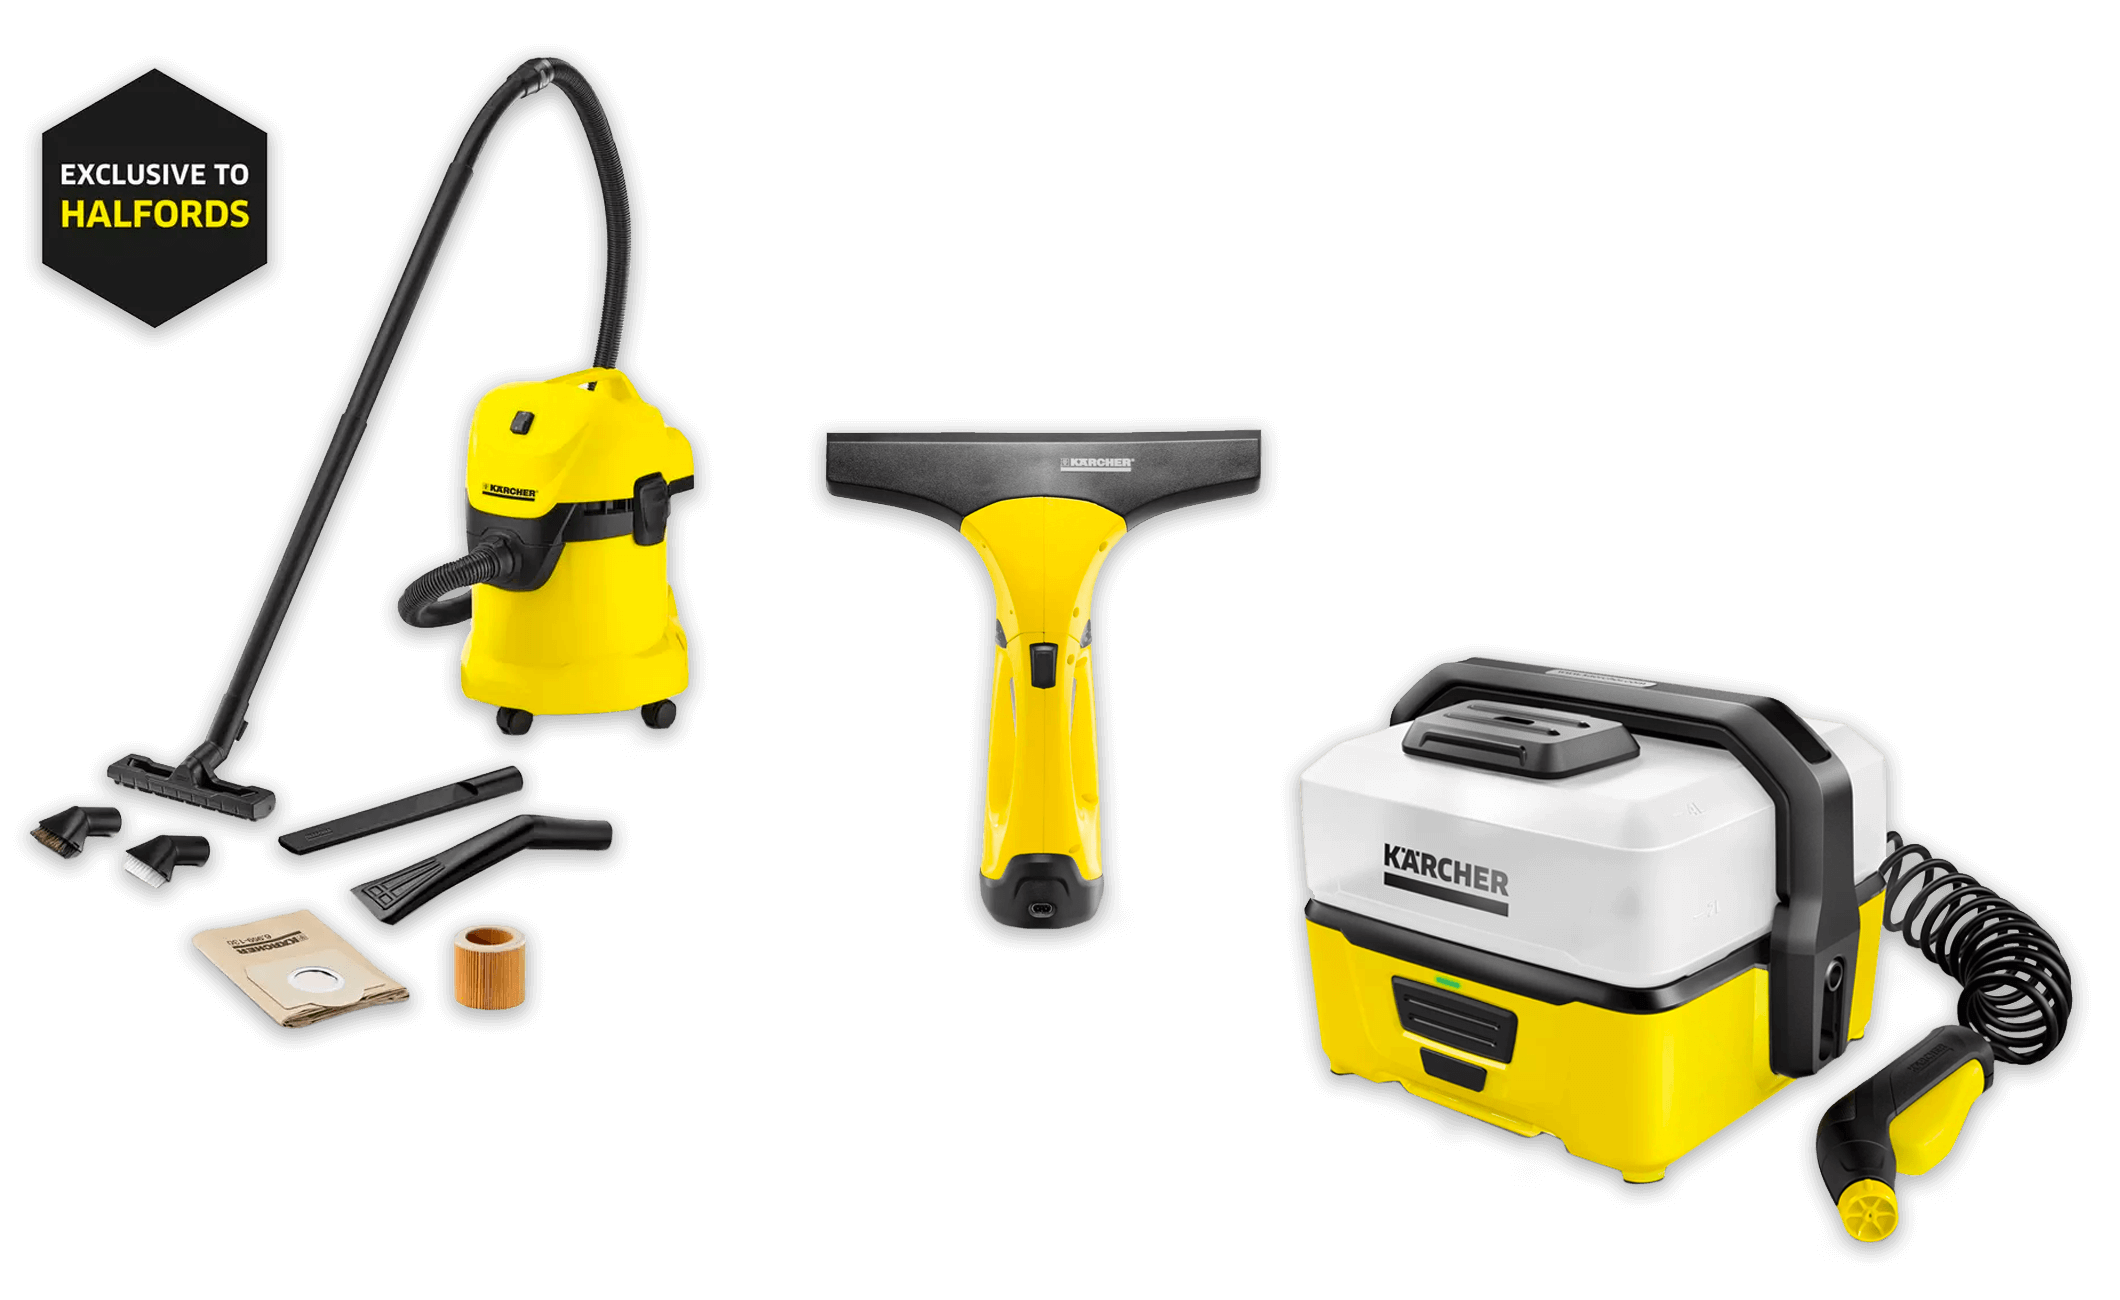 Karcher Vacuum Cleaners & Window Vacuums